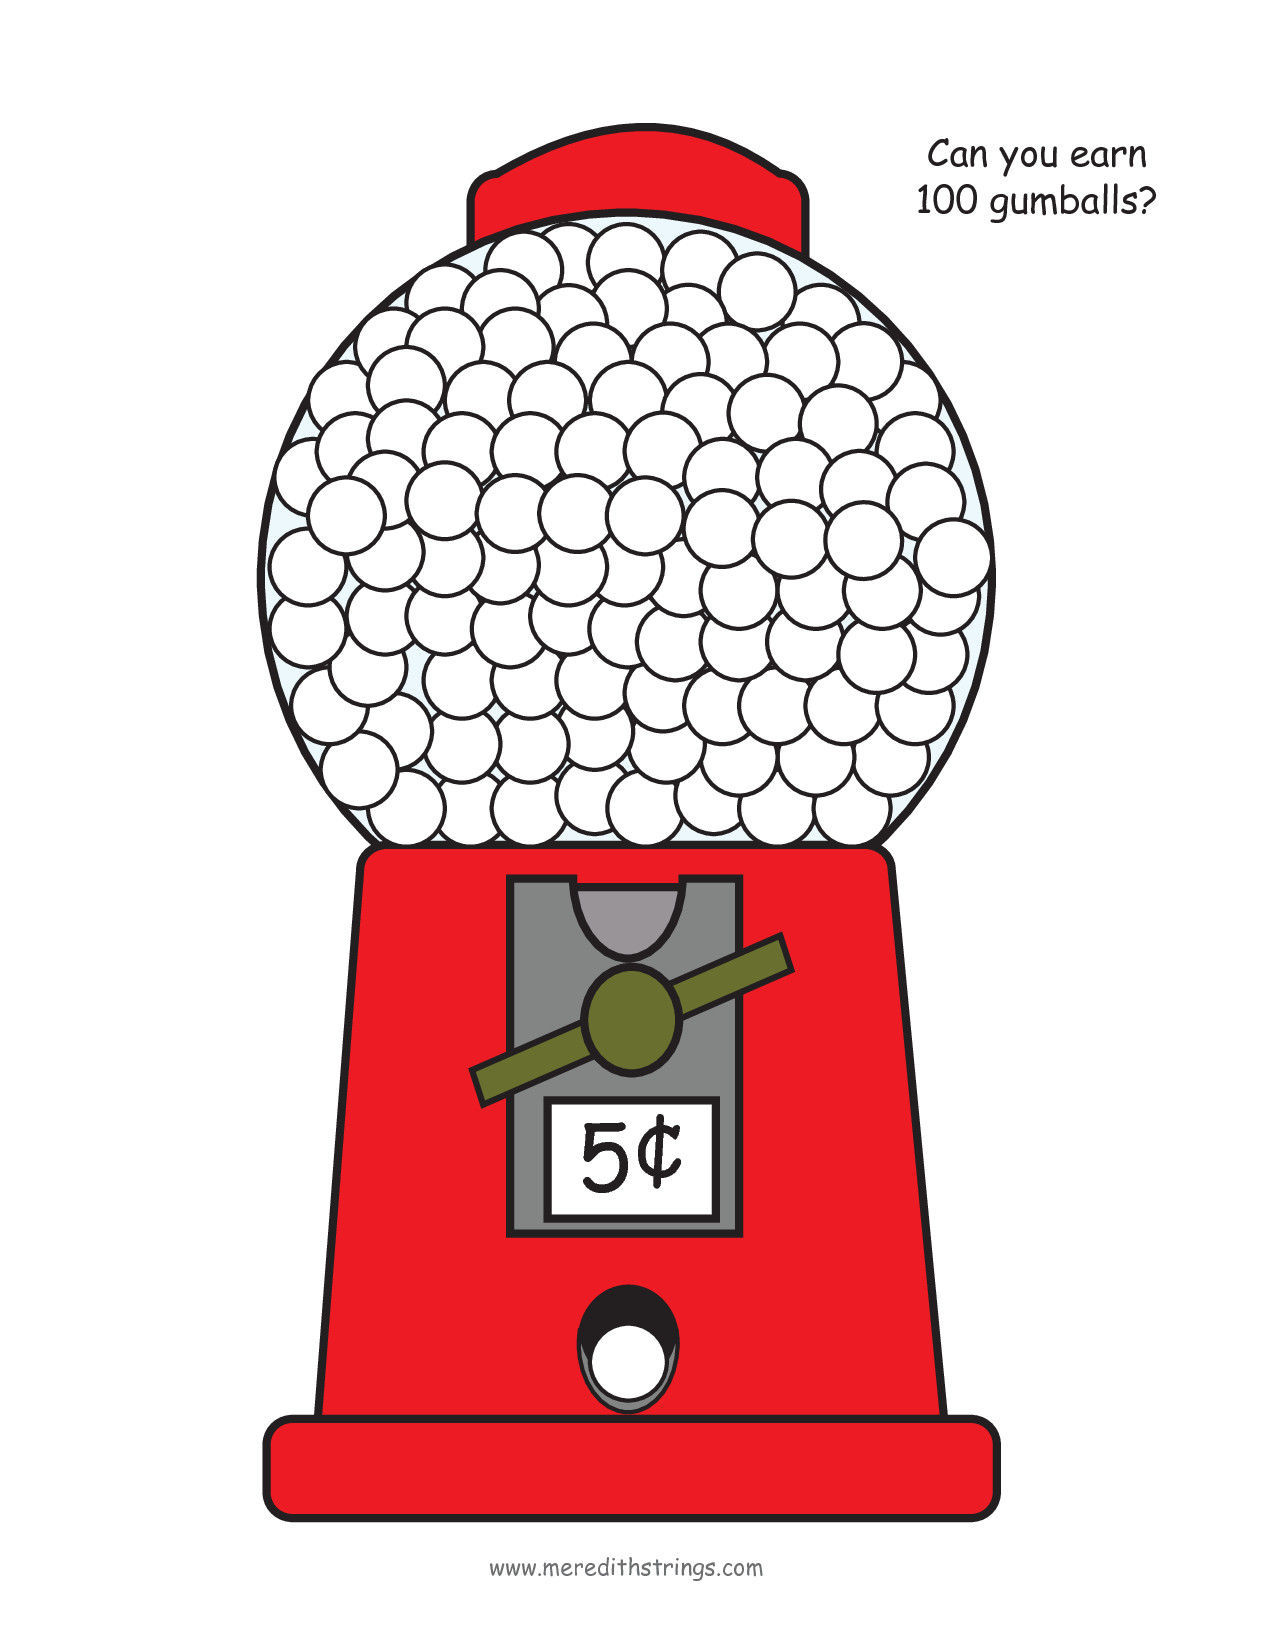 clipart-gumball-machine-picturesque-bubble-gum-learnfree-me-remarkable-empty